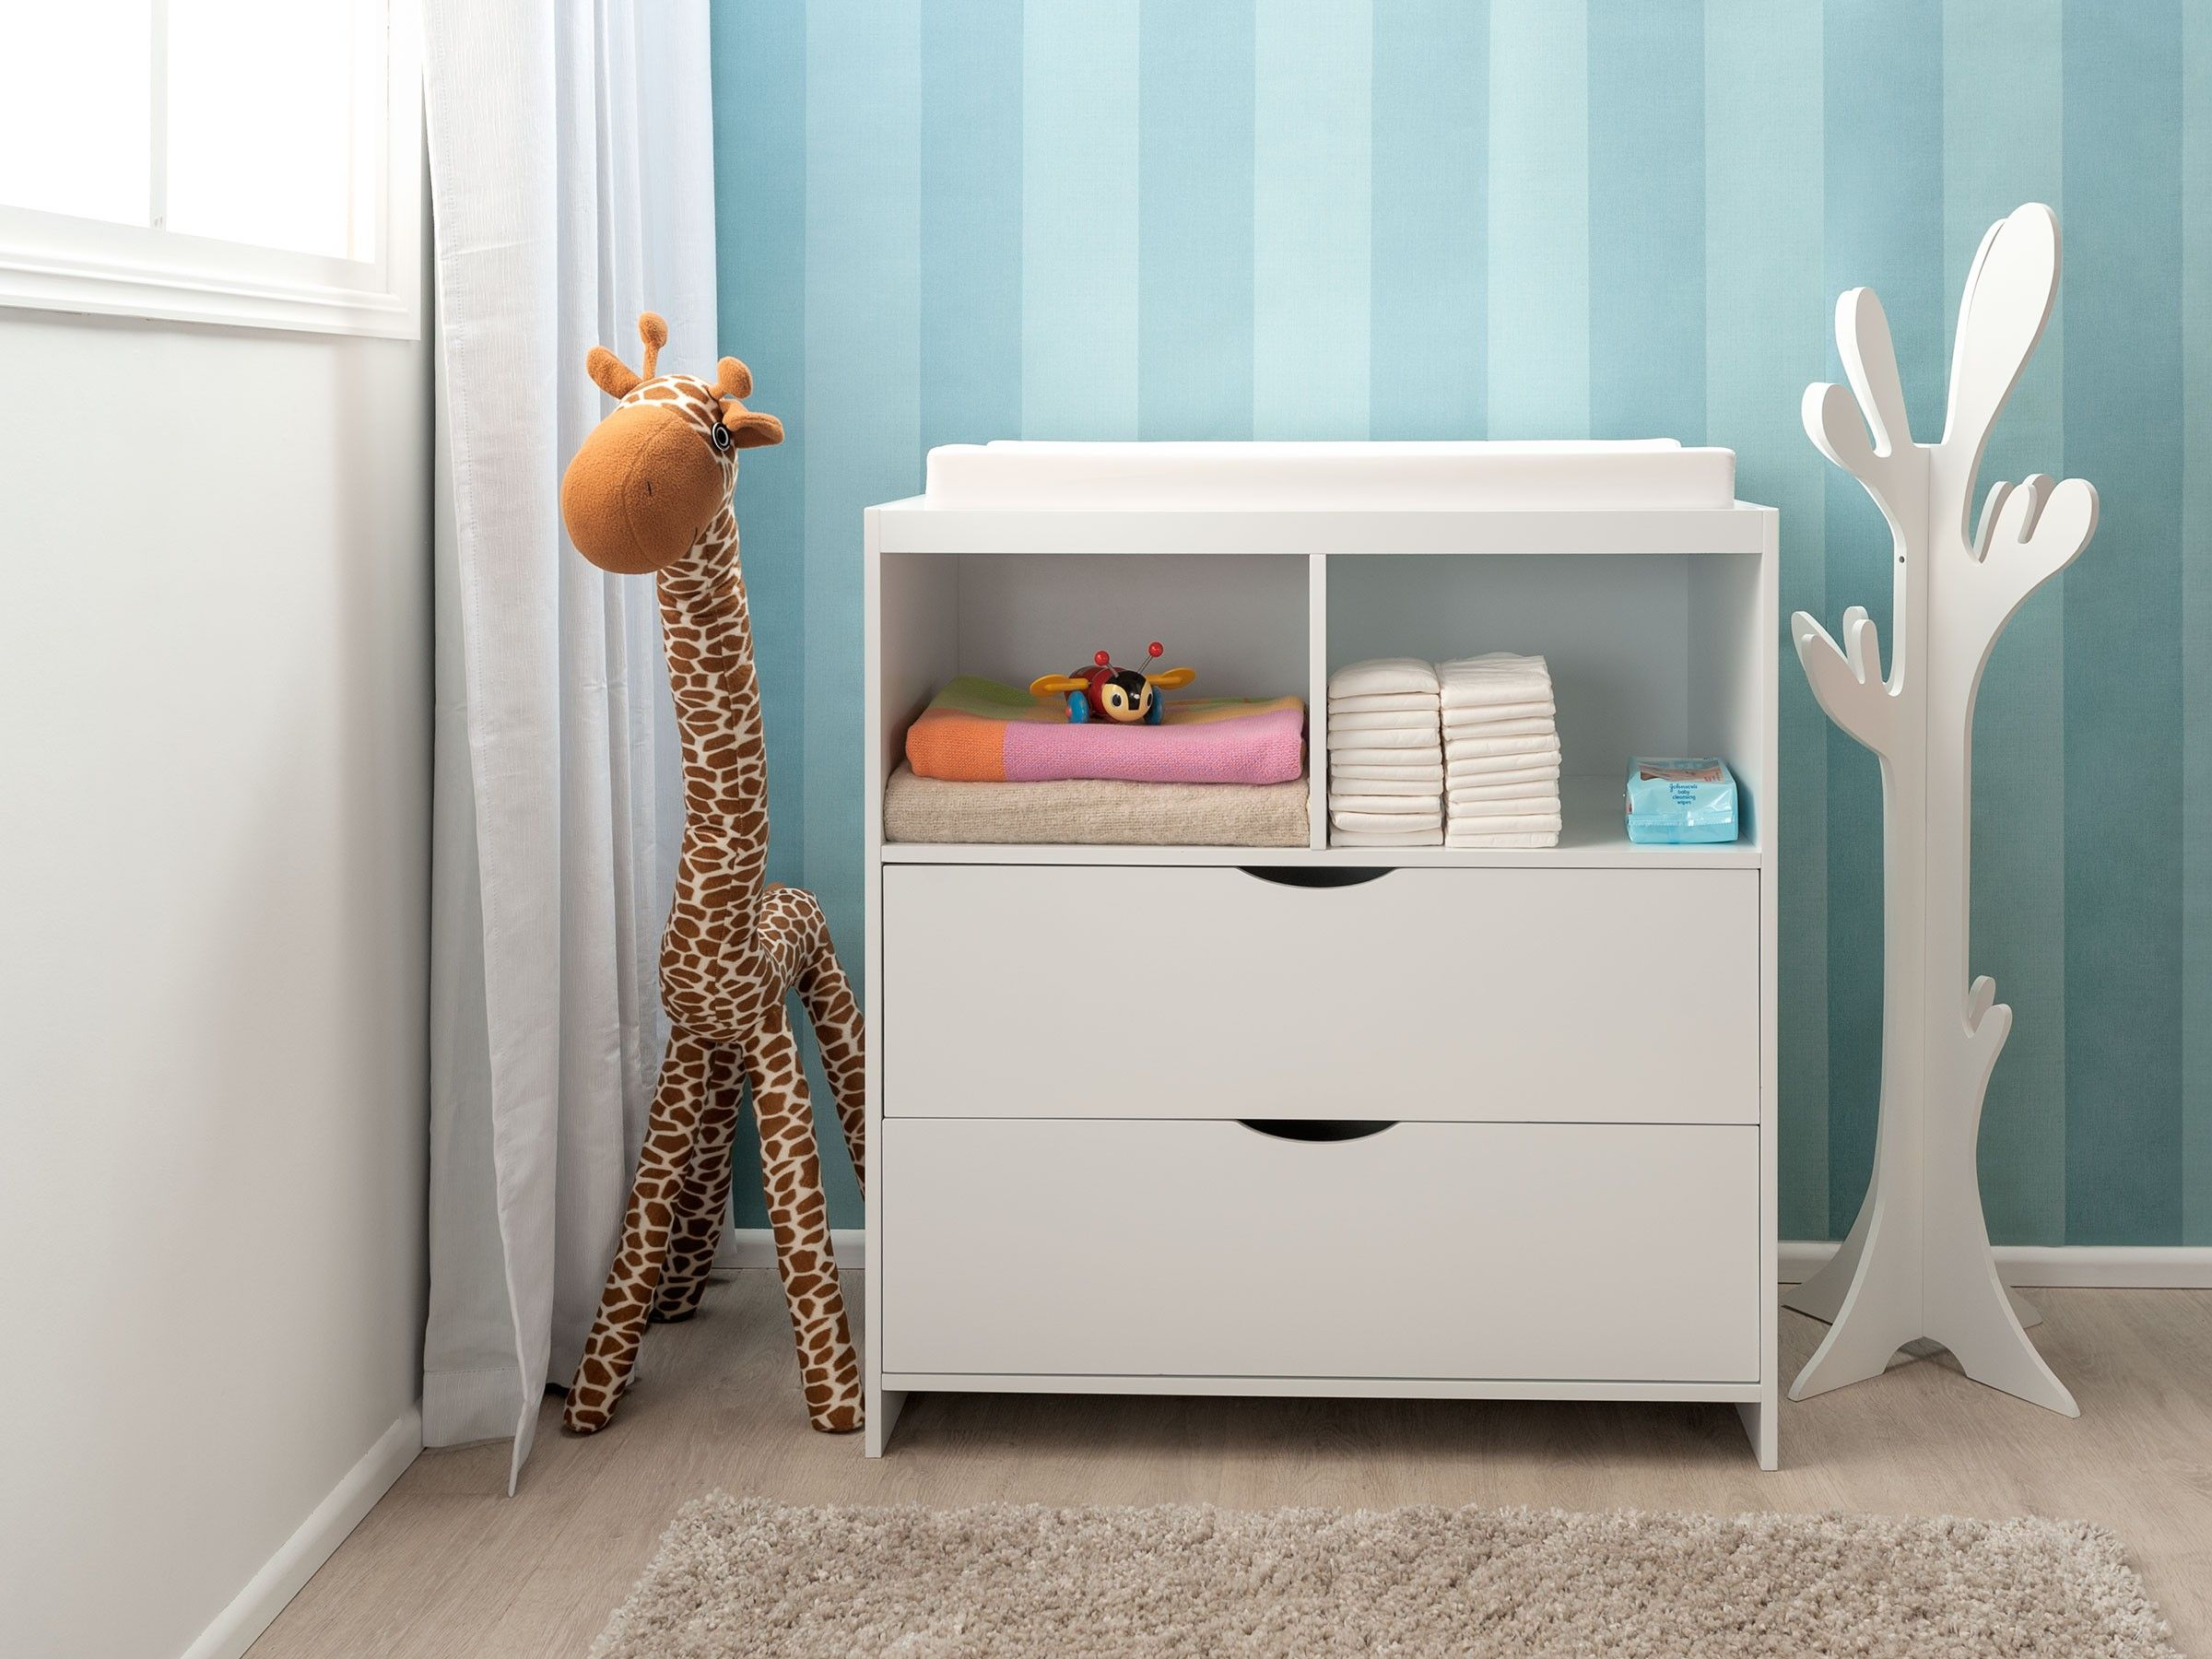 The Mocka Brooklyn Change Table And Drawer Set Is The Perfect Height For  Changing Your Baby, While Easily Transitioning Into Future Rooms For  Storage When ...